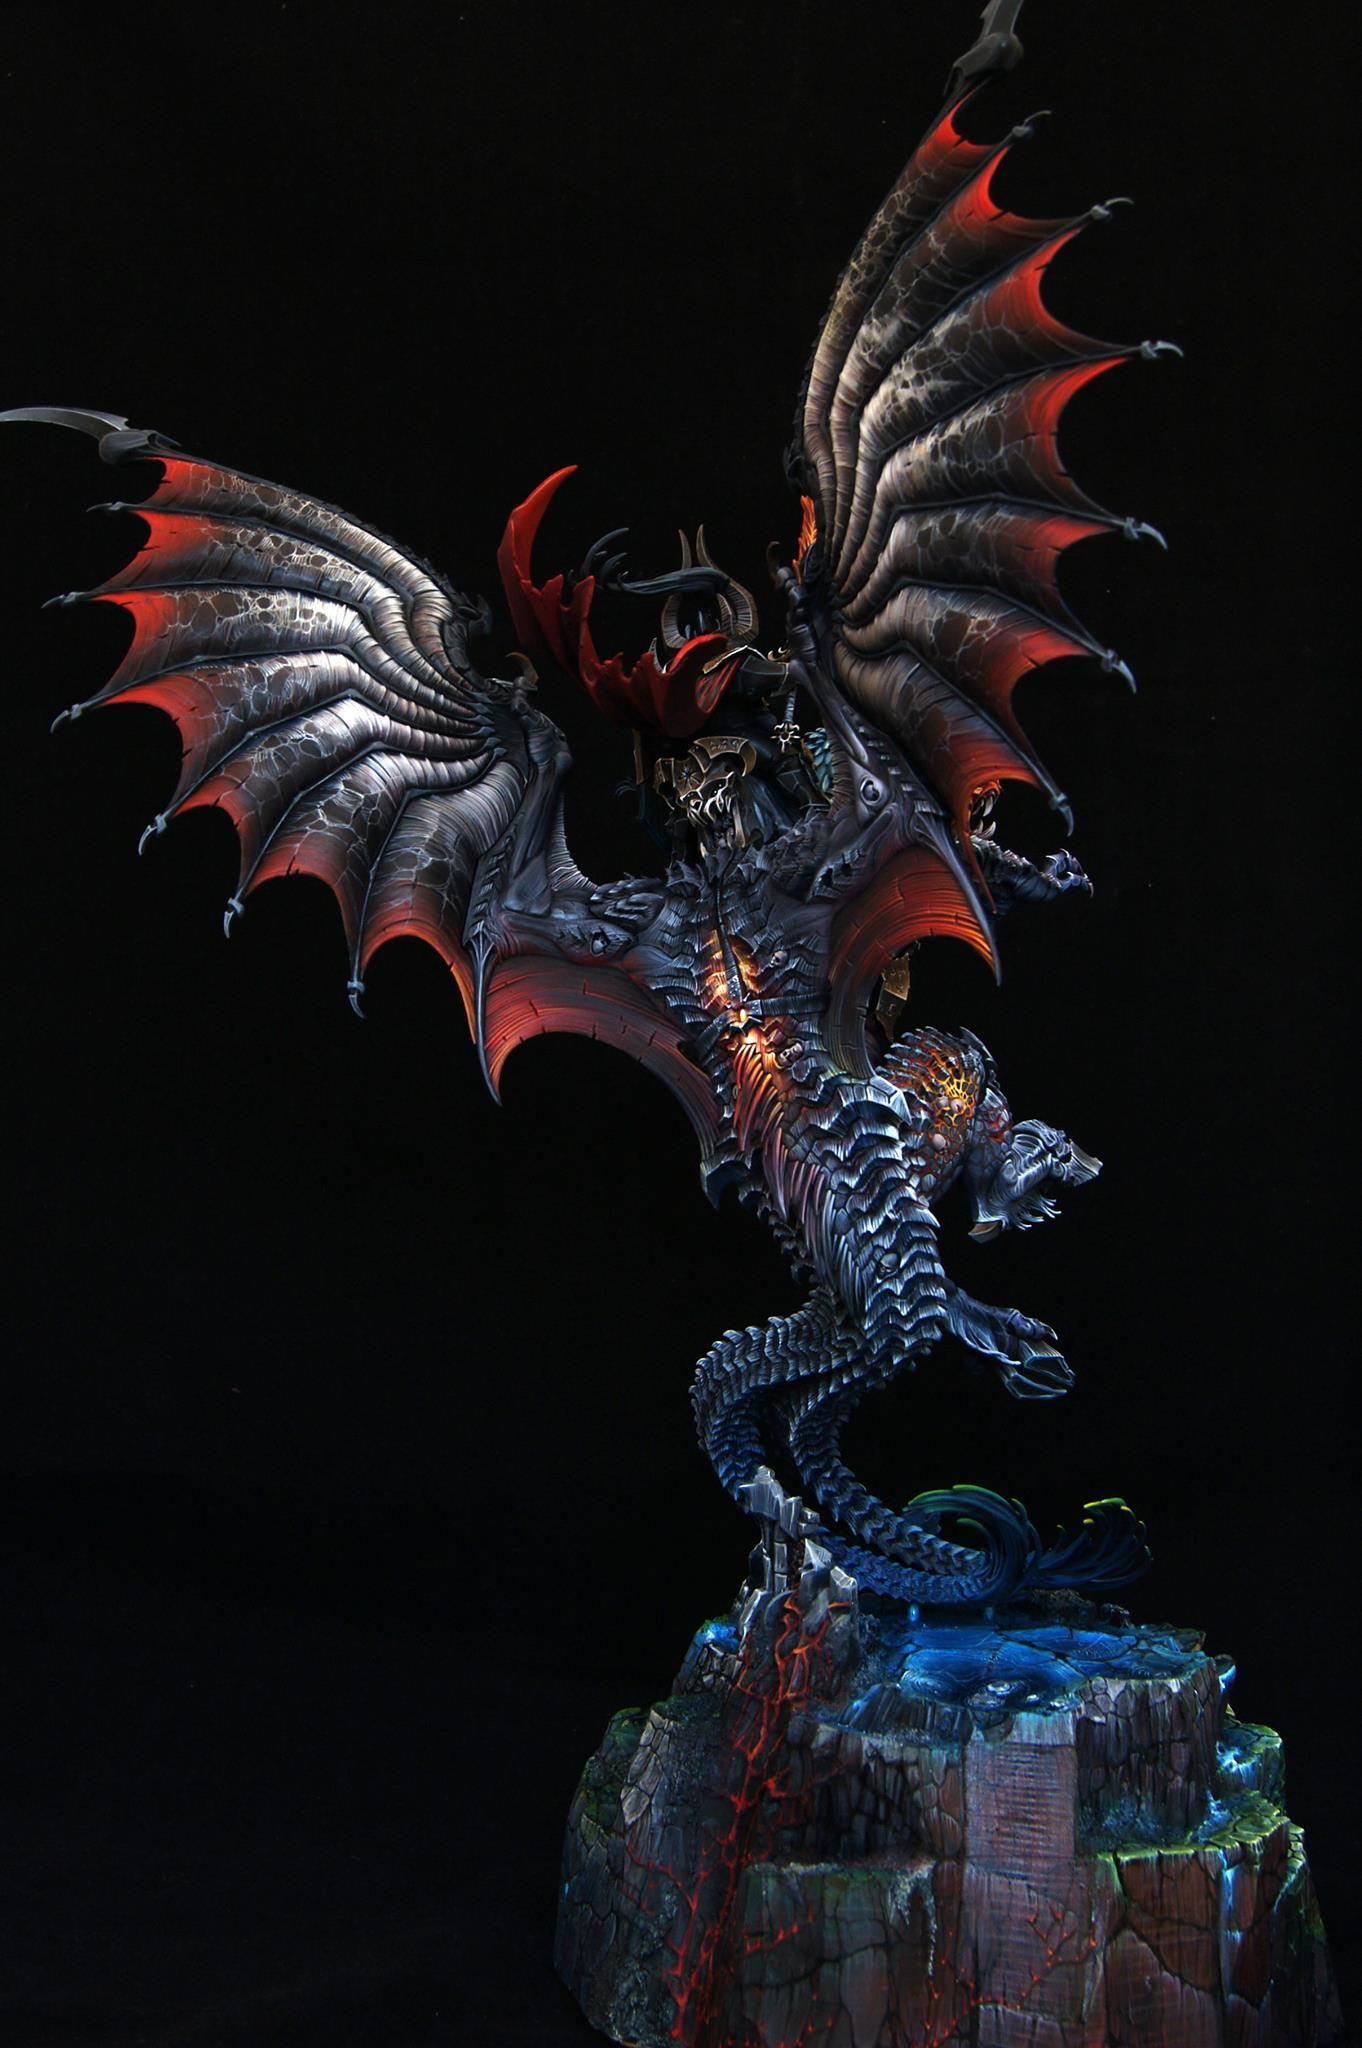 Age Of Sigmar, Archaon Everchosen, Golden Demon, Object Source Lighting, Wet Blending